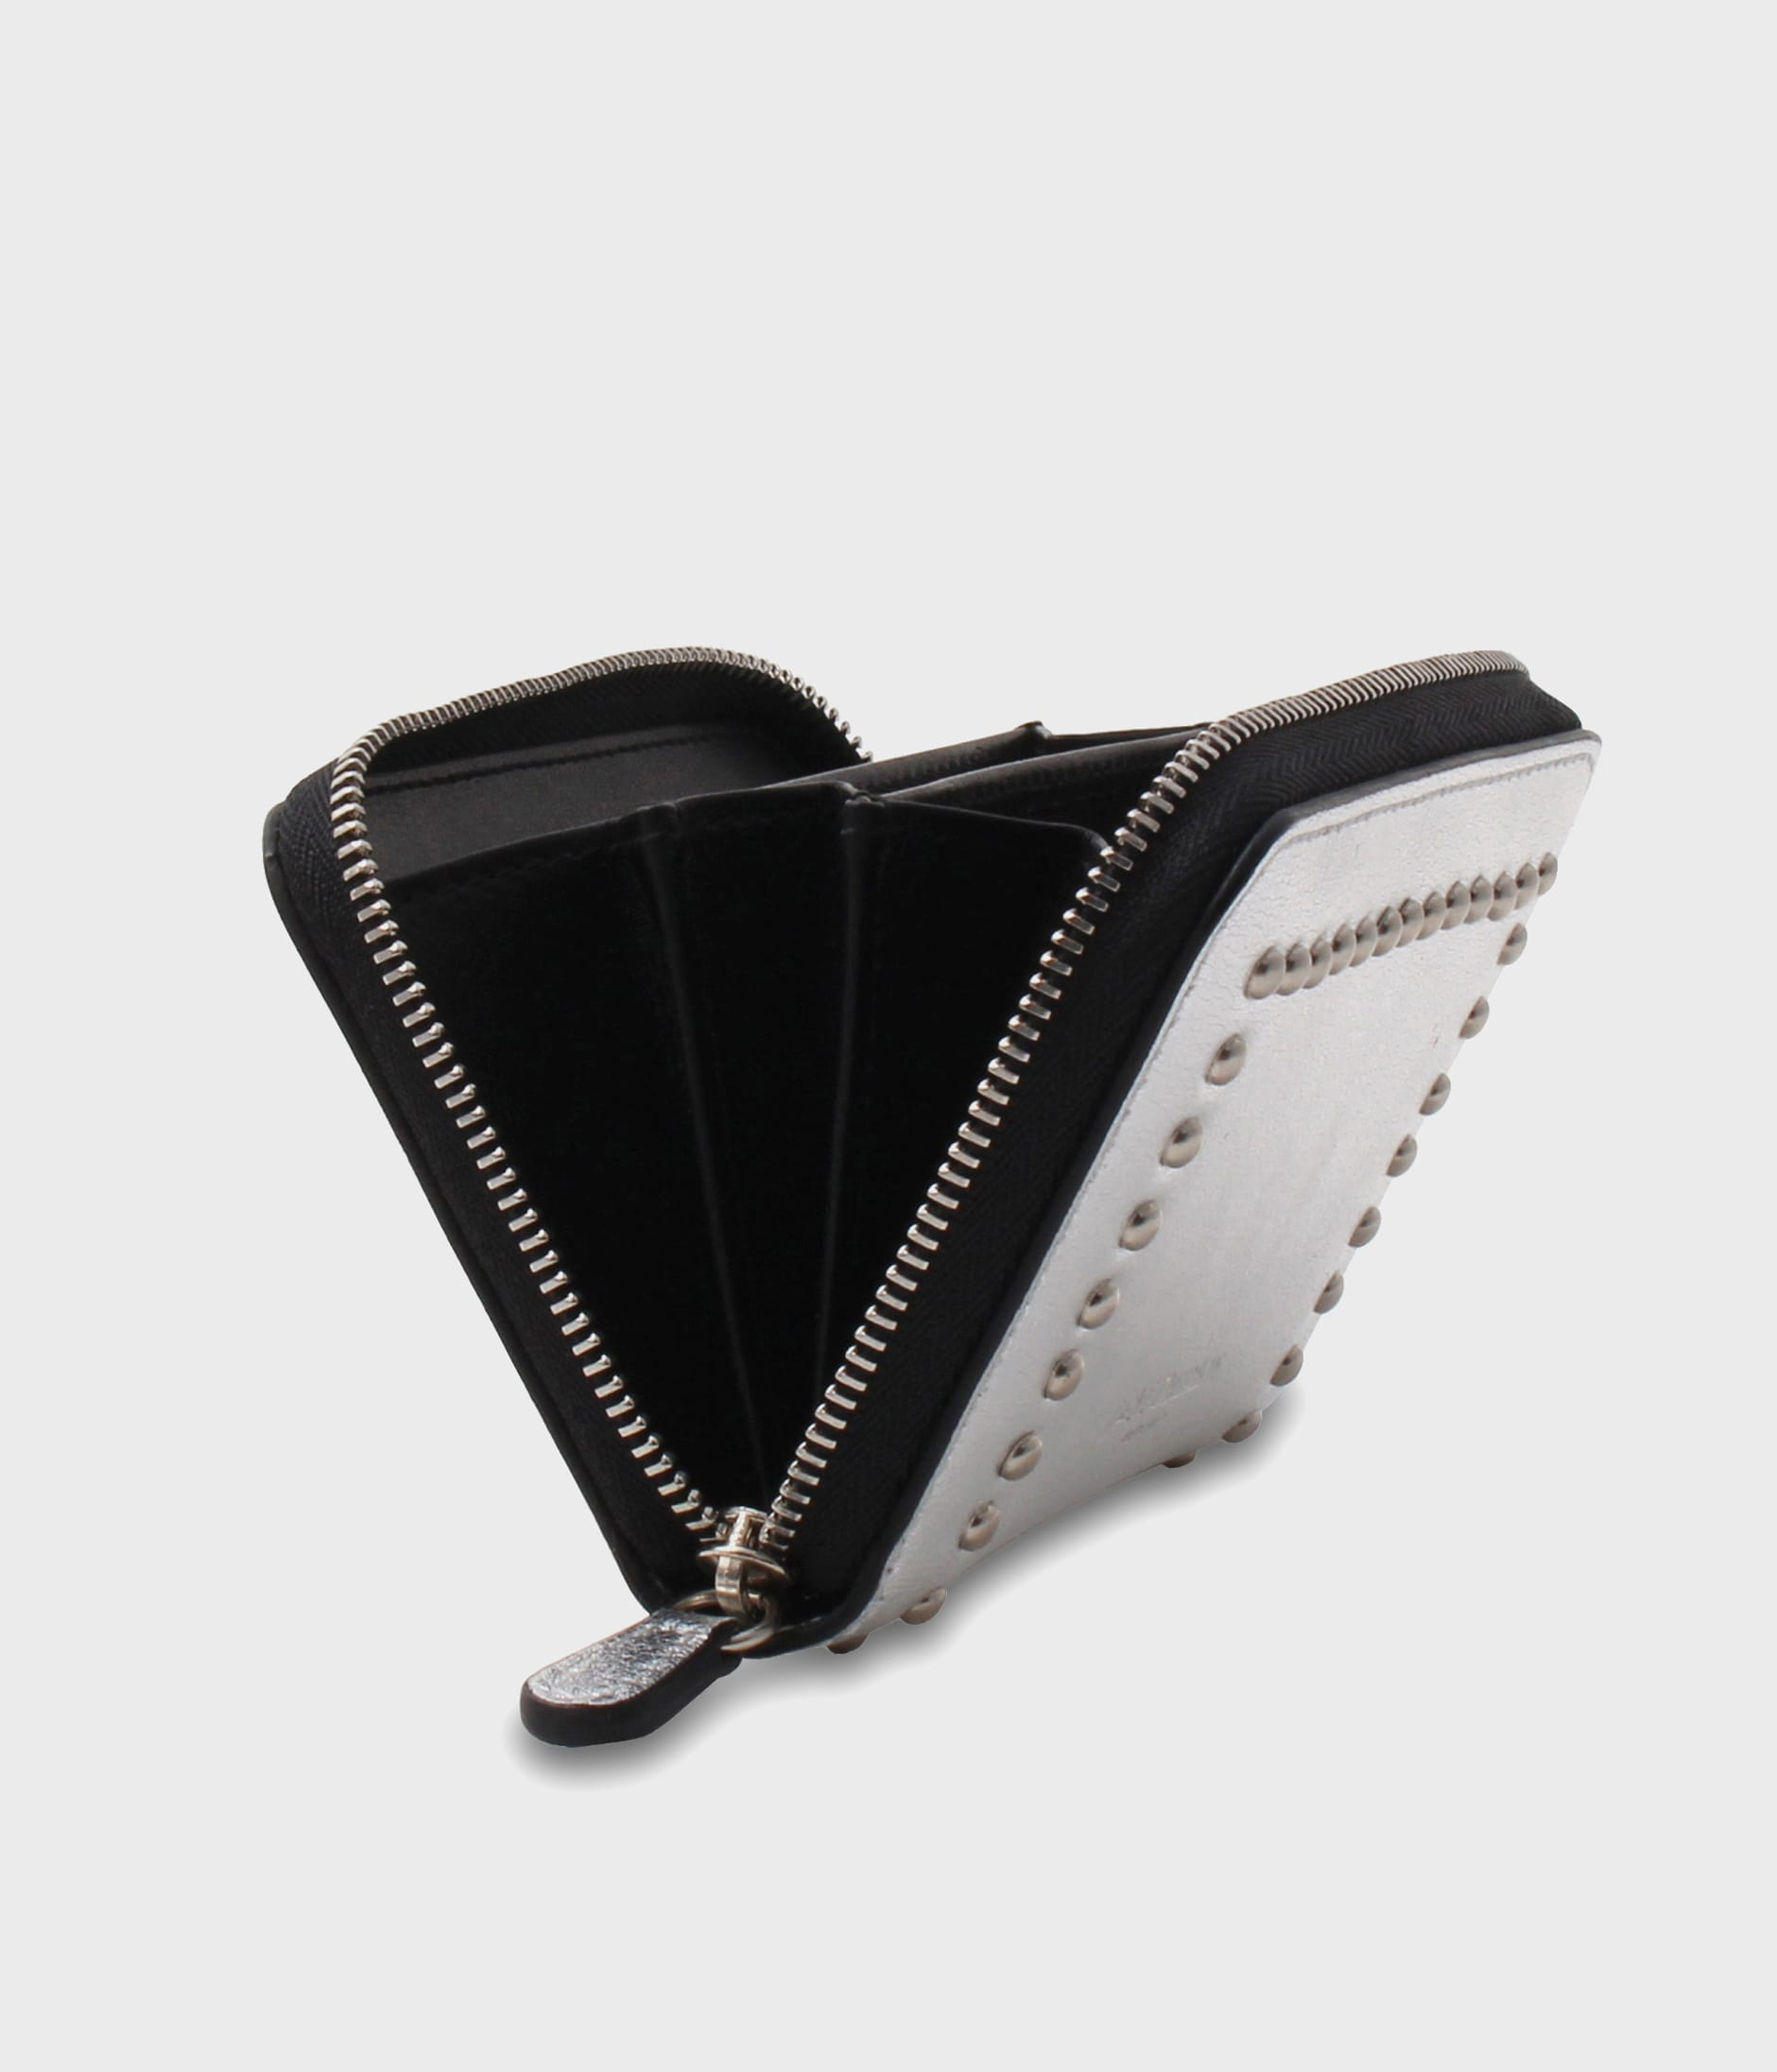 SMALL ZIP PURSE WITH STUDS 詳細画像 SILVER 6